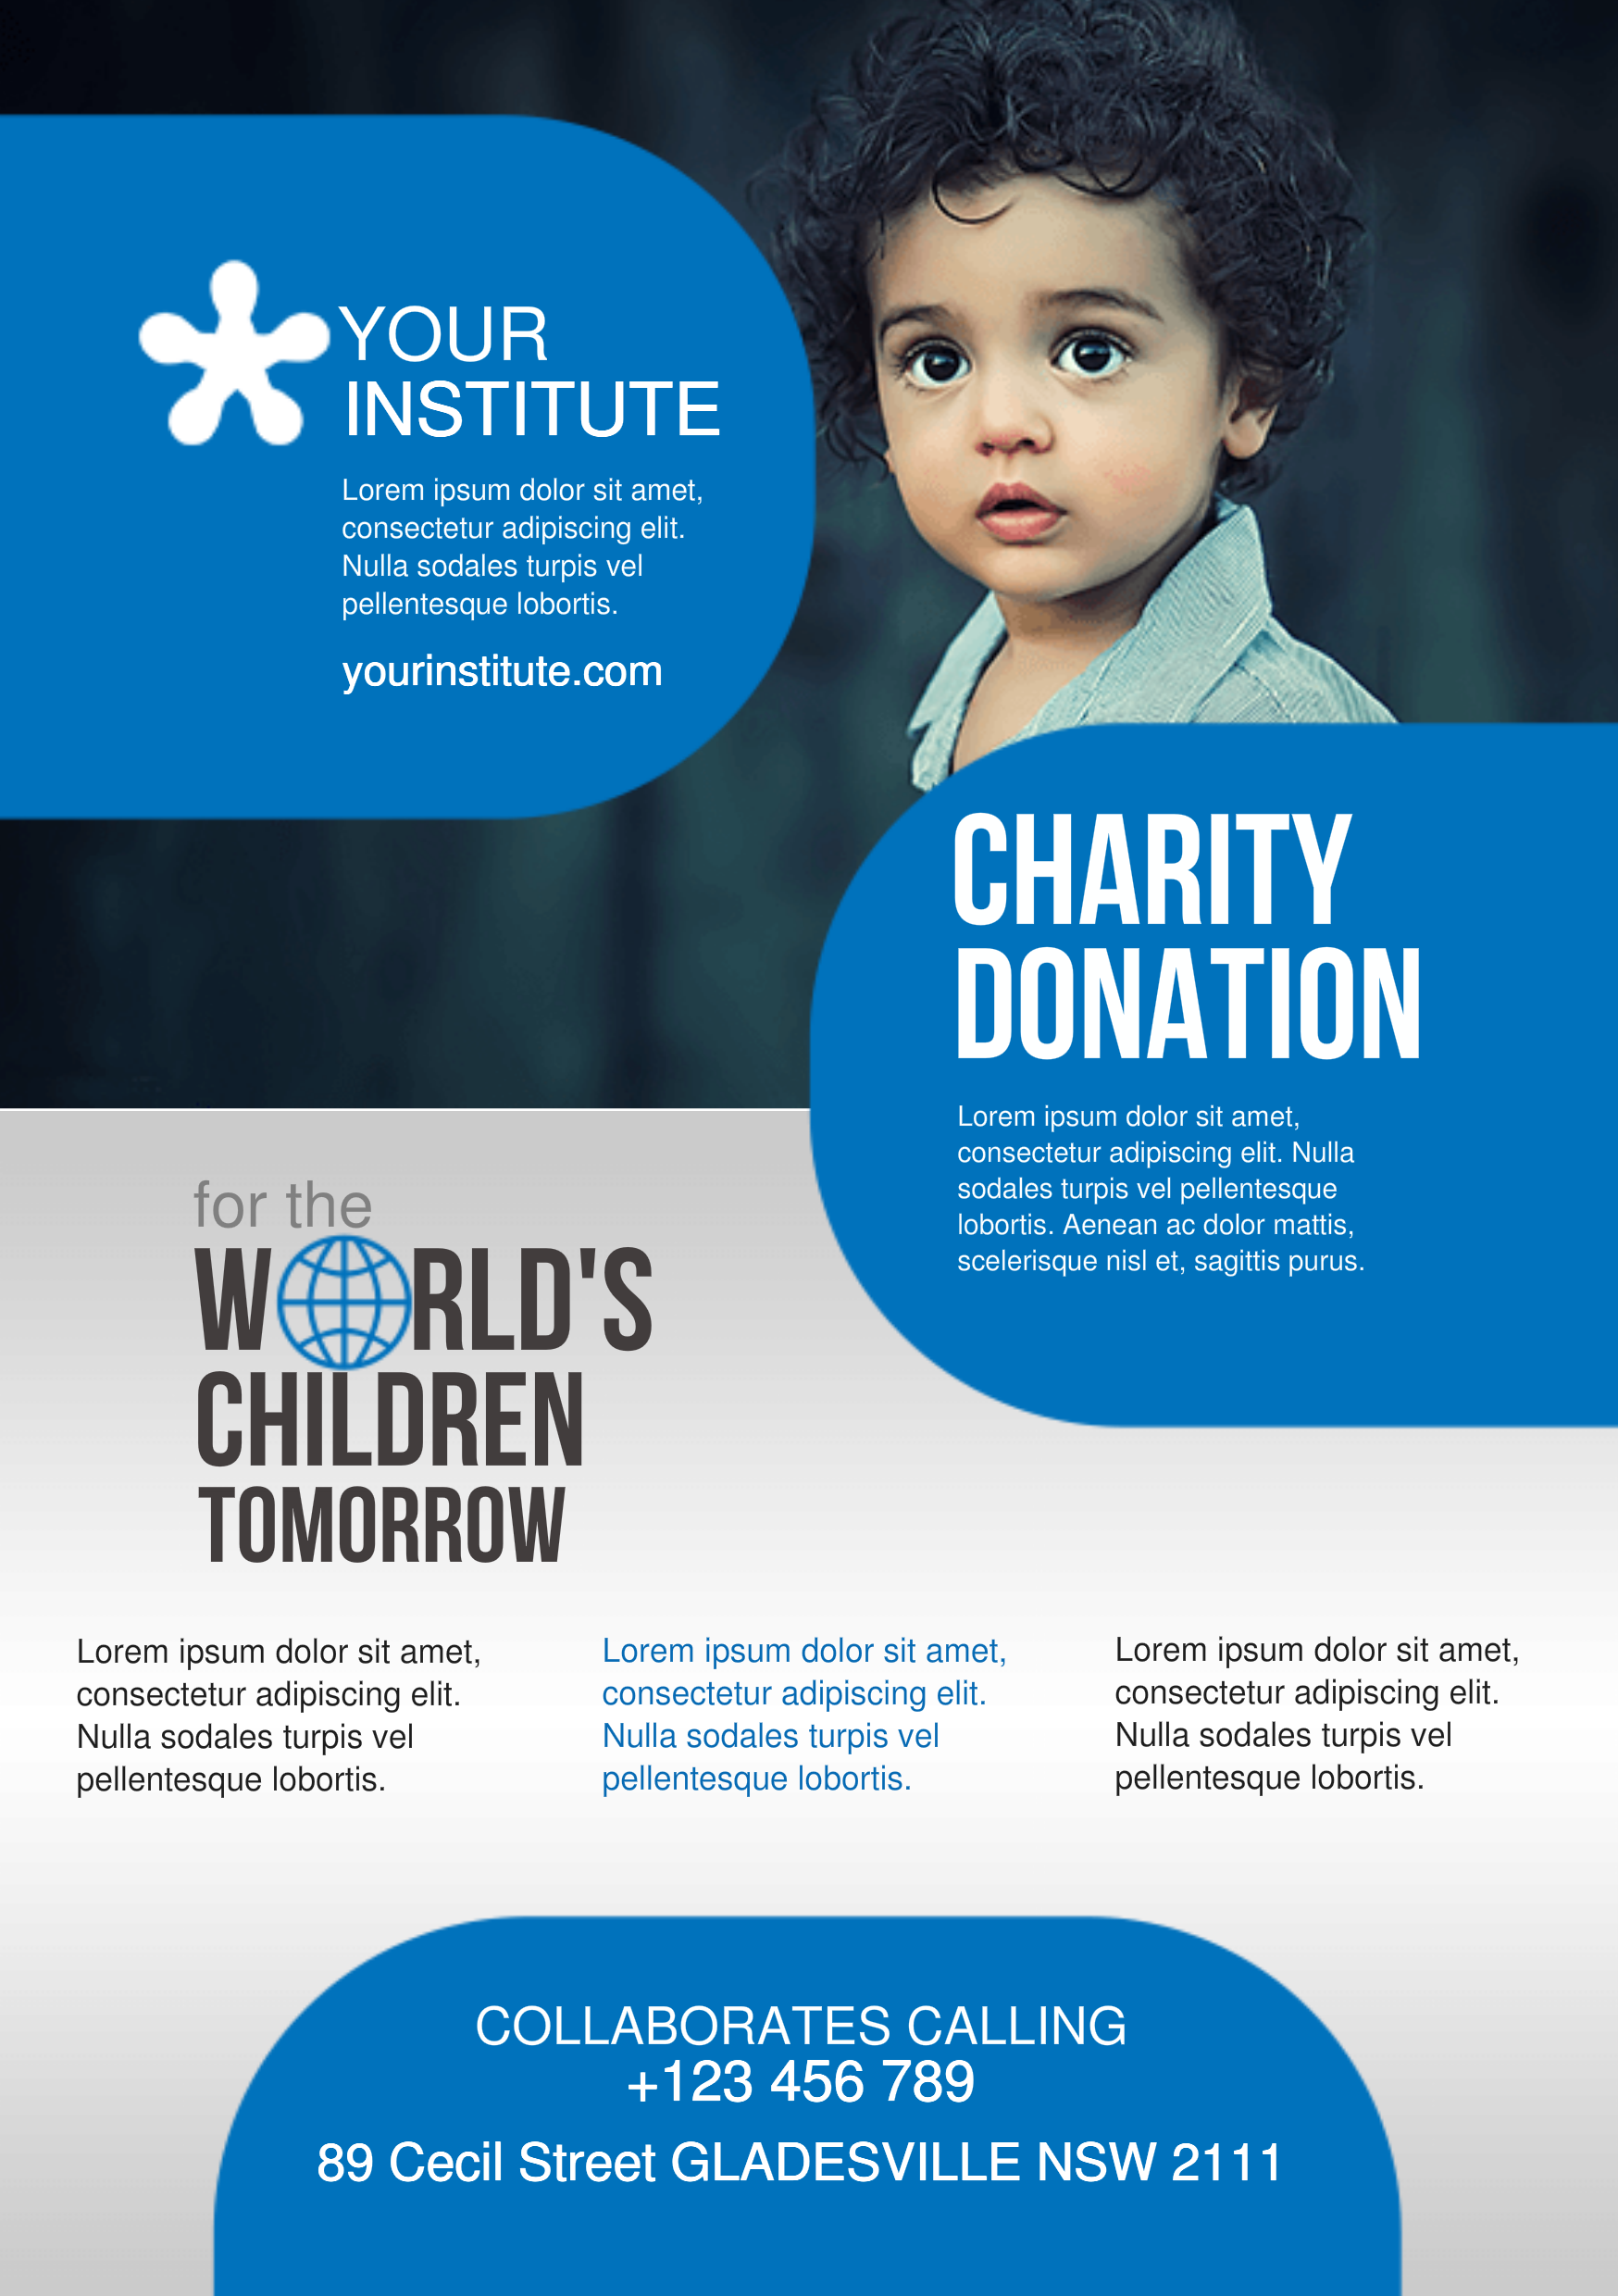 Charity A Promotional Flyer HttpPremadevideosComAFlyer